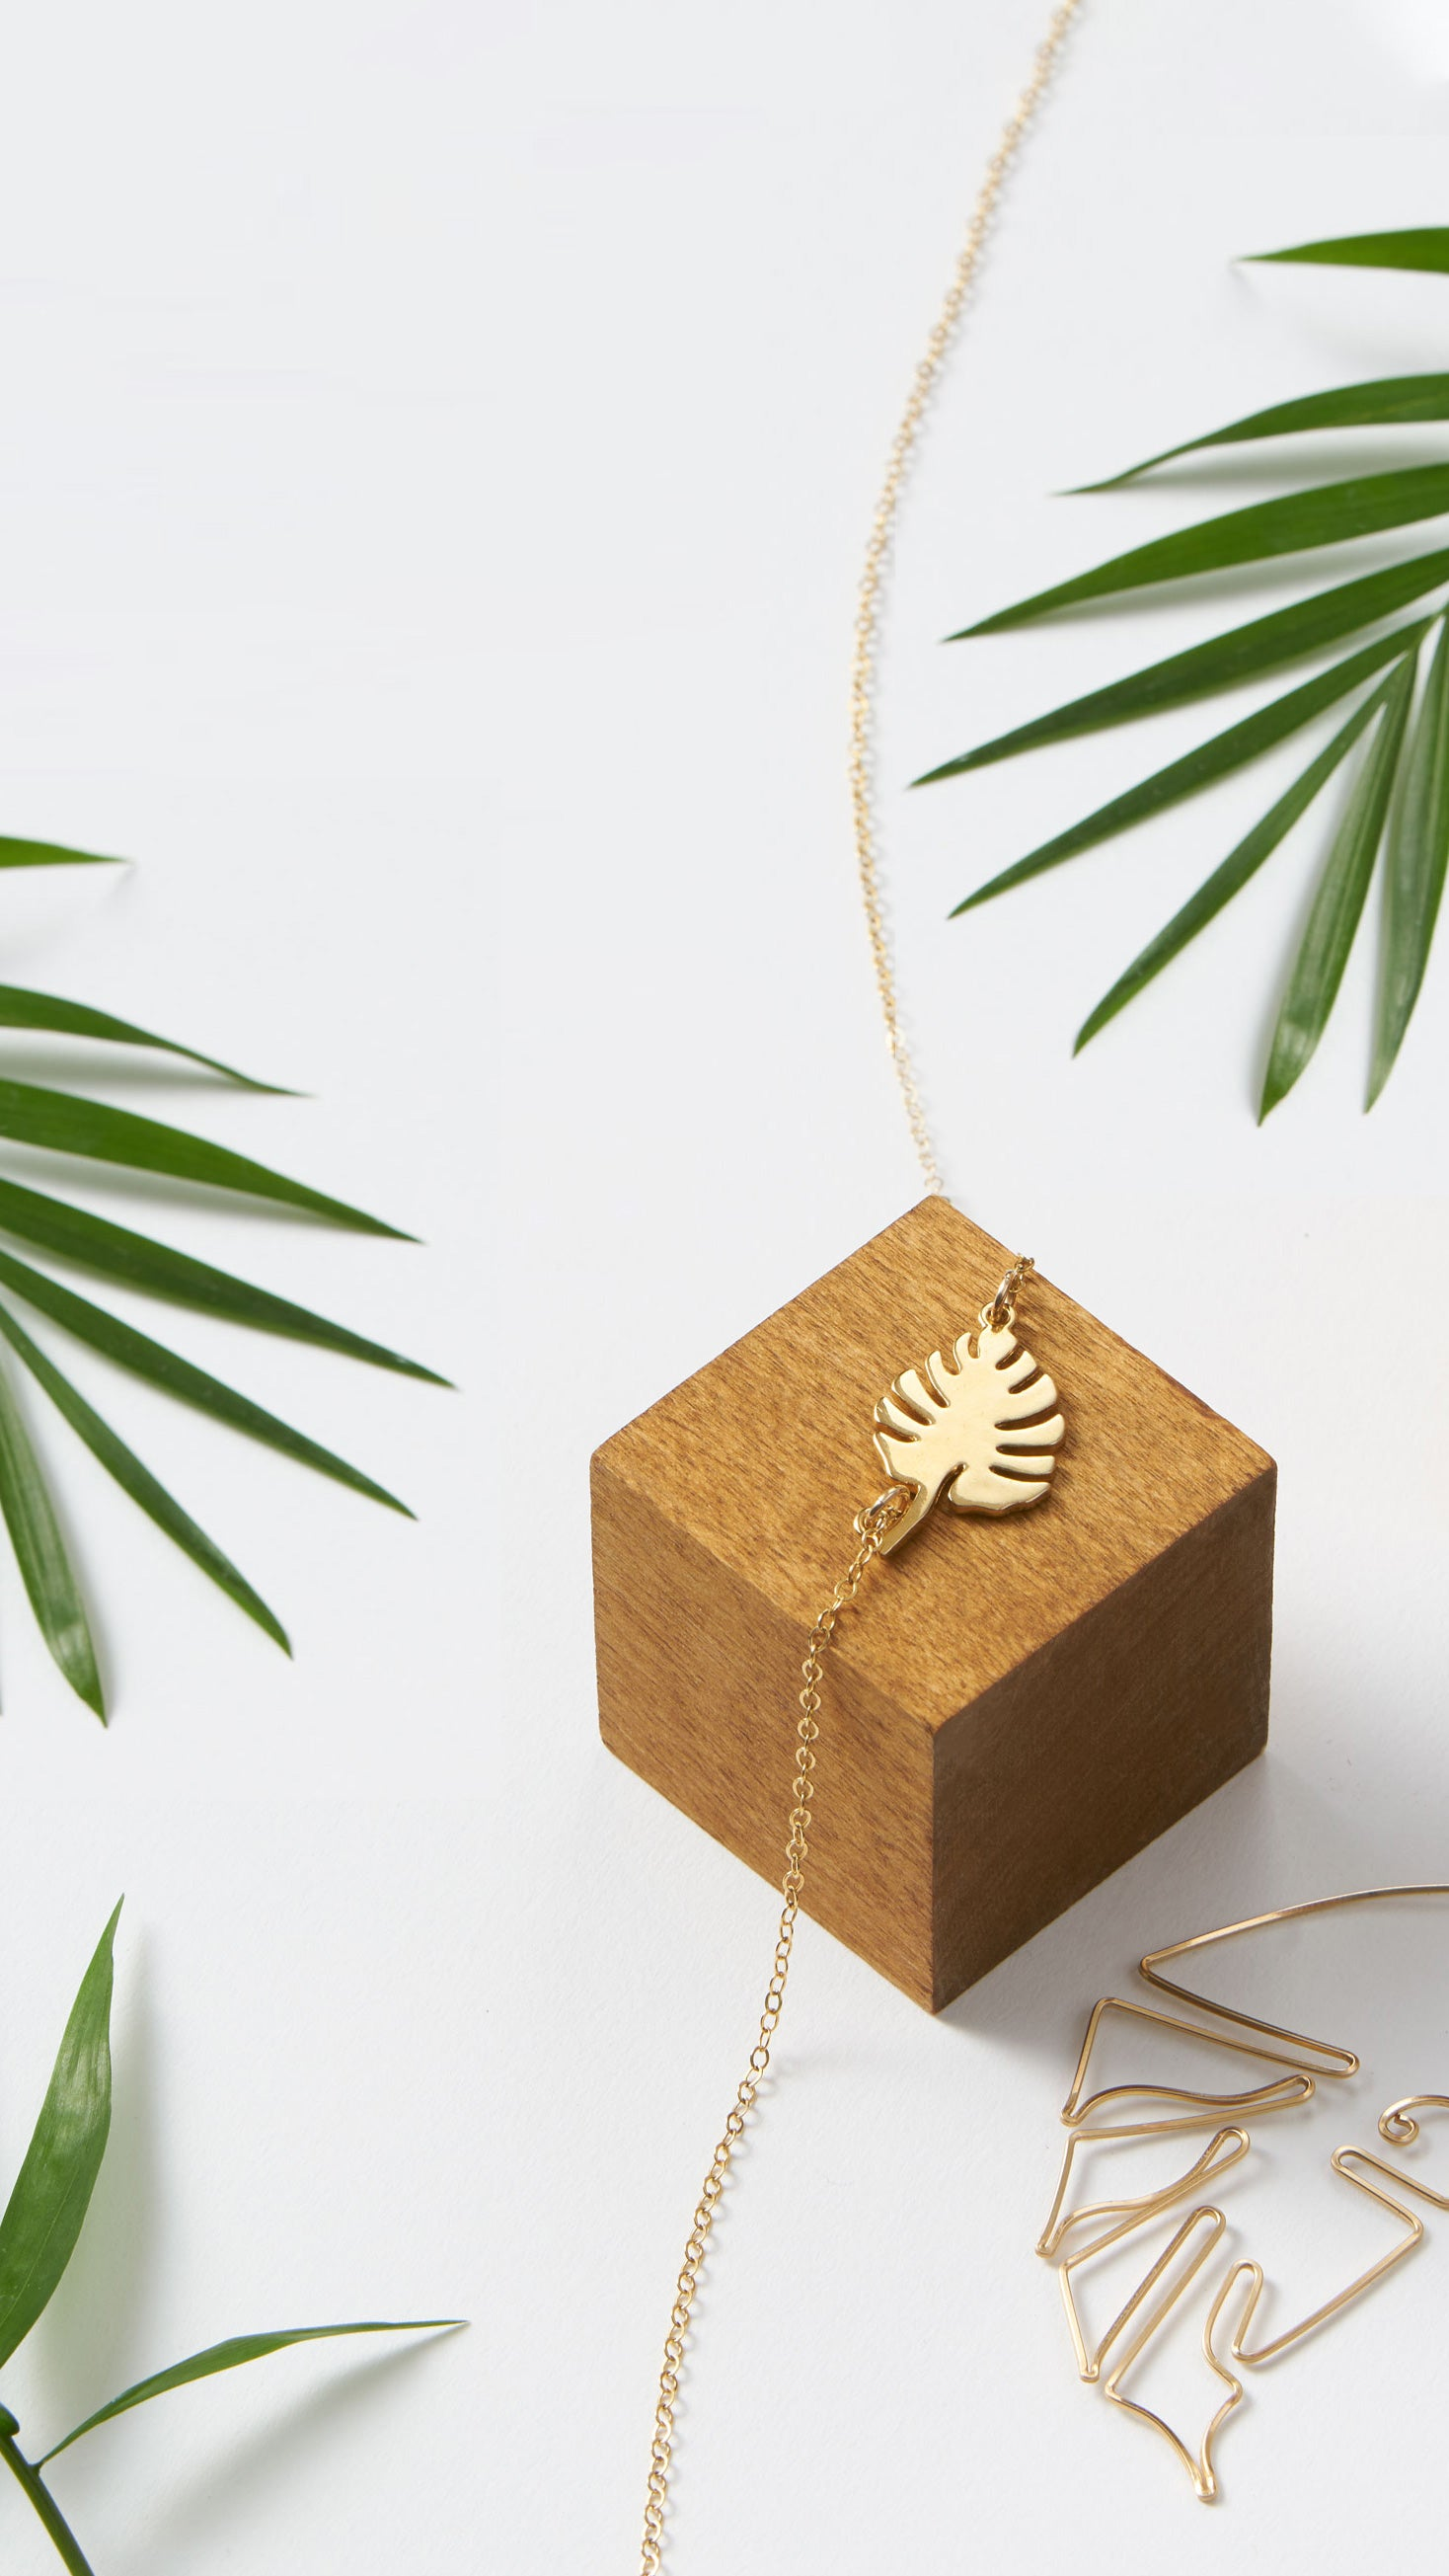 83cbfe38 The Sill Gift Shop | Plant themed apparel, gifts, decor and more